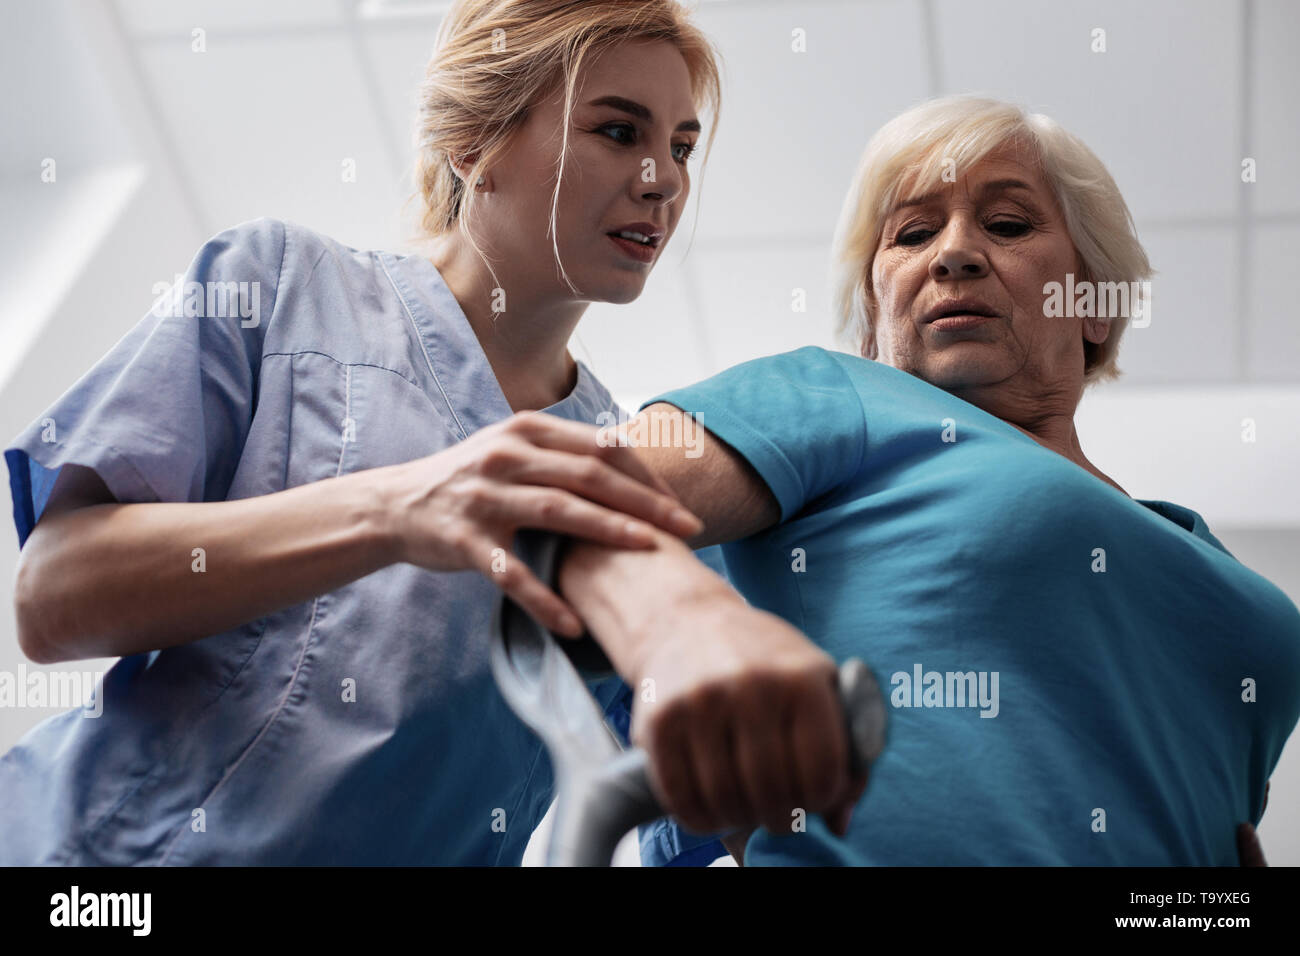 Low angle of a nice female patient - Stock Image